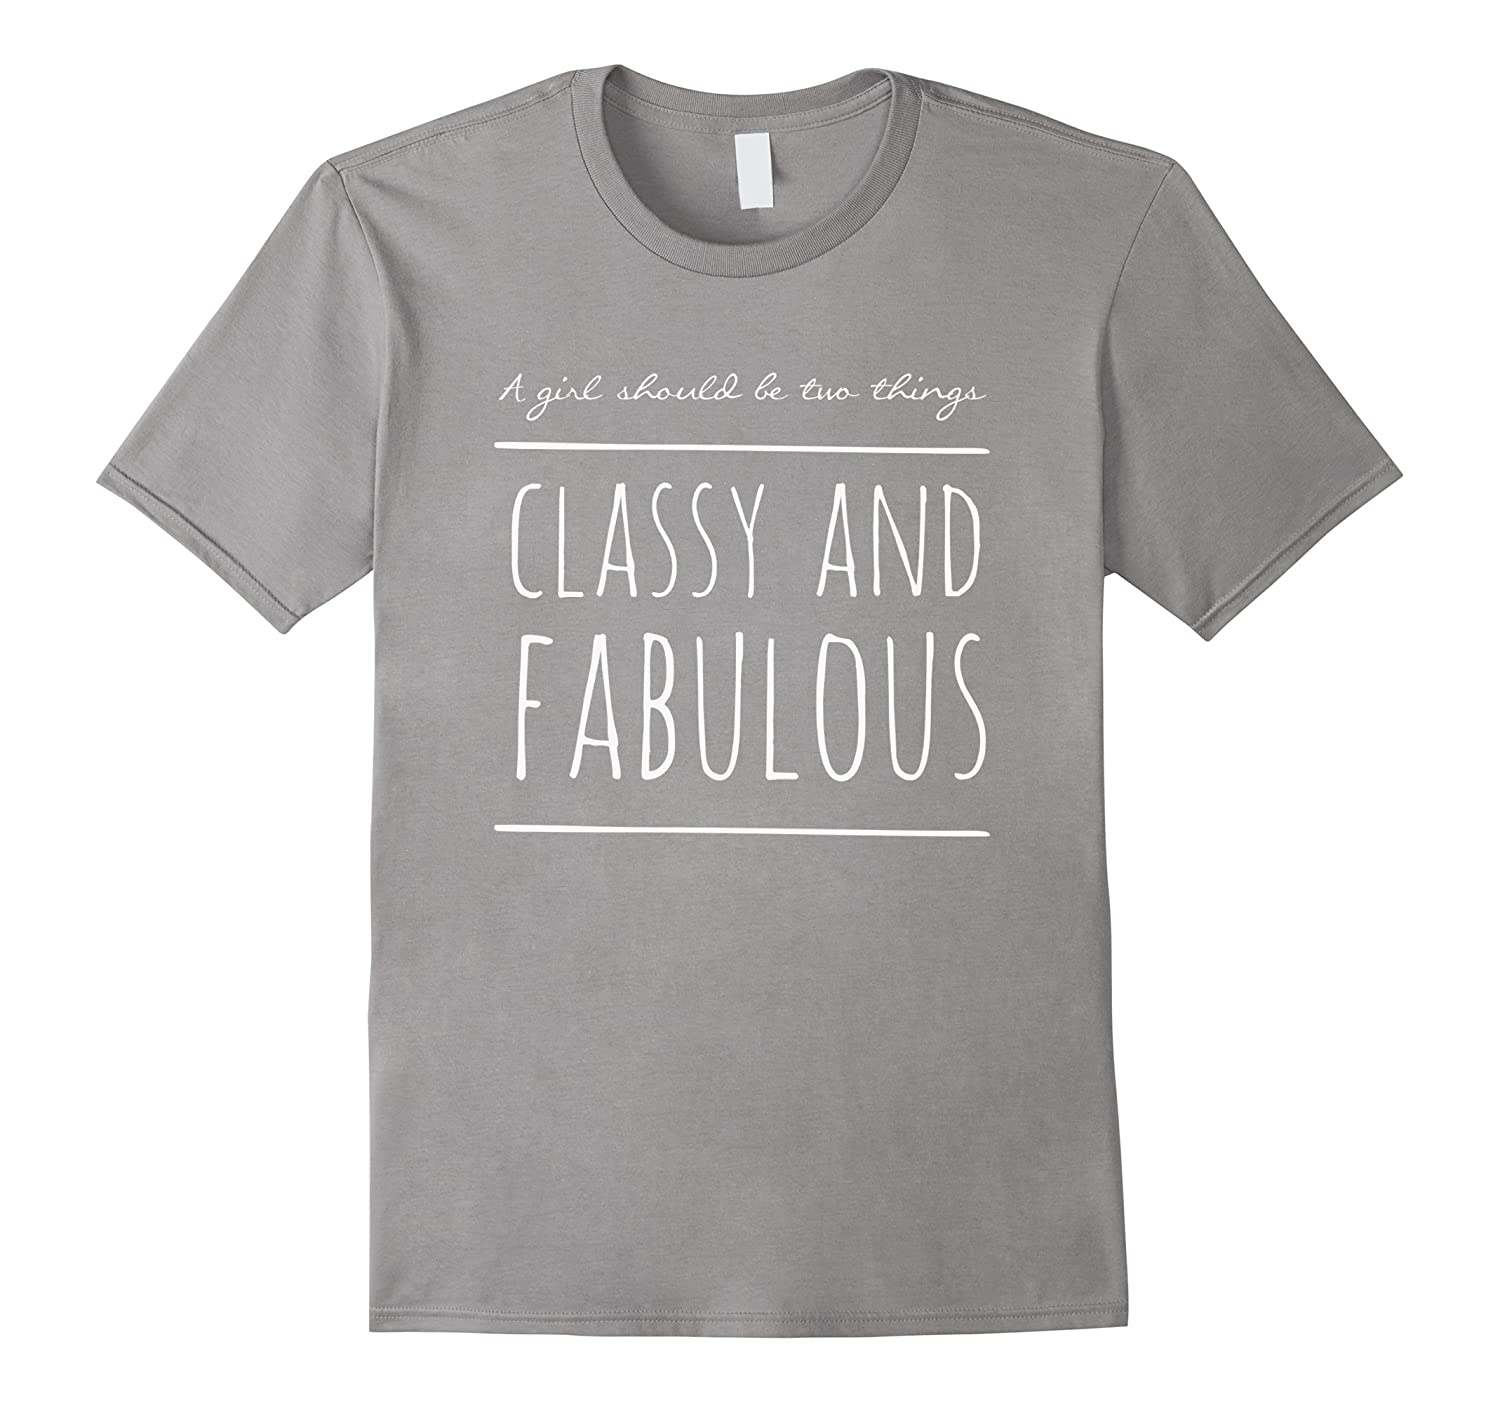 A girl should be two things - classy and fabulous t shirt-BN